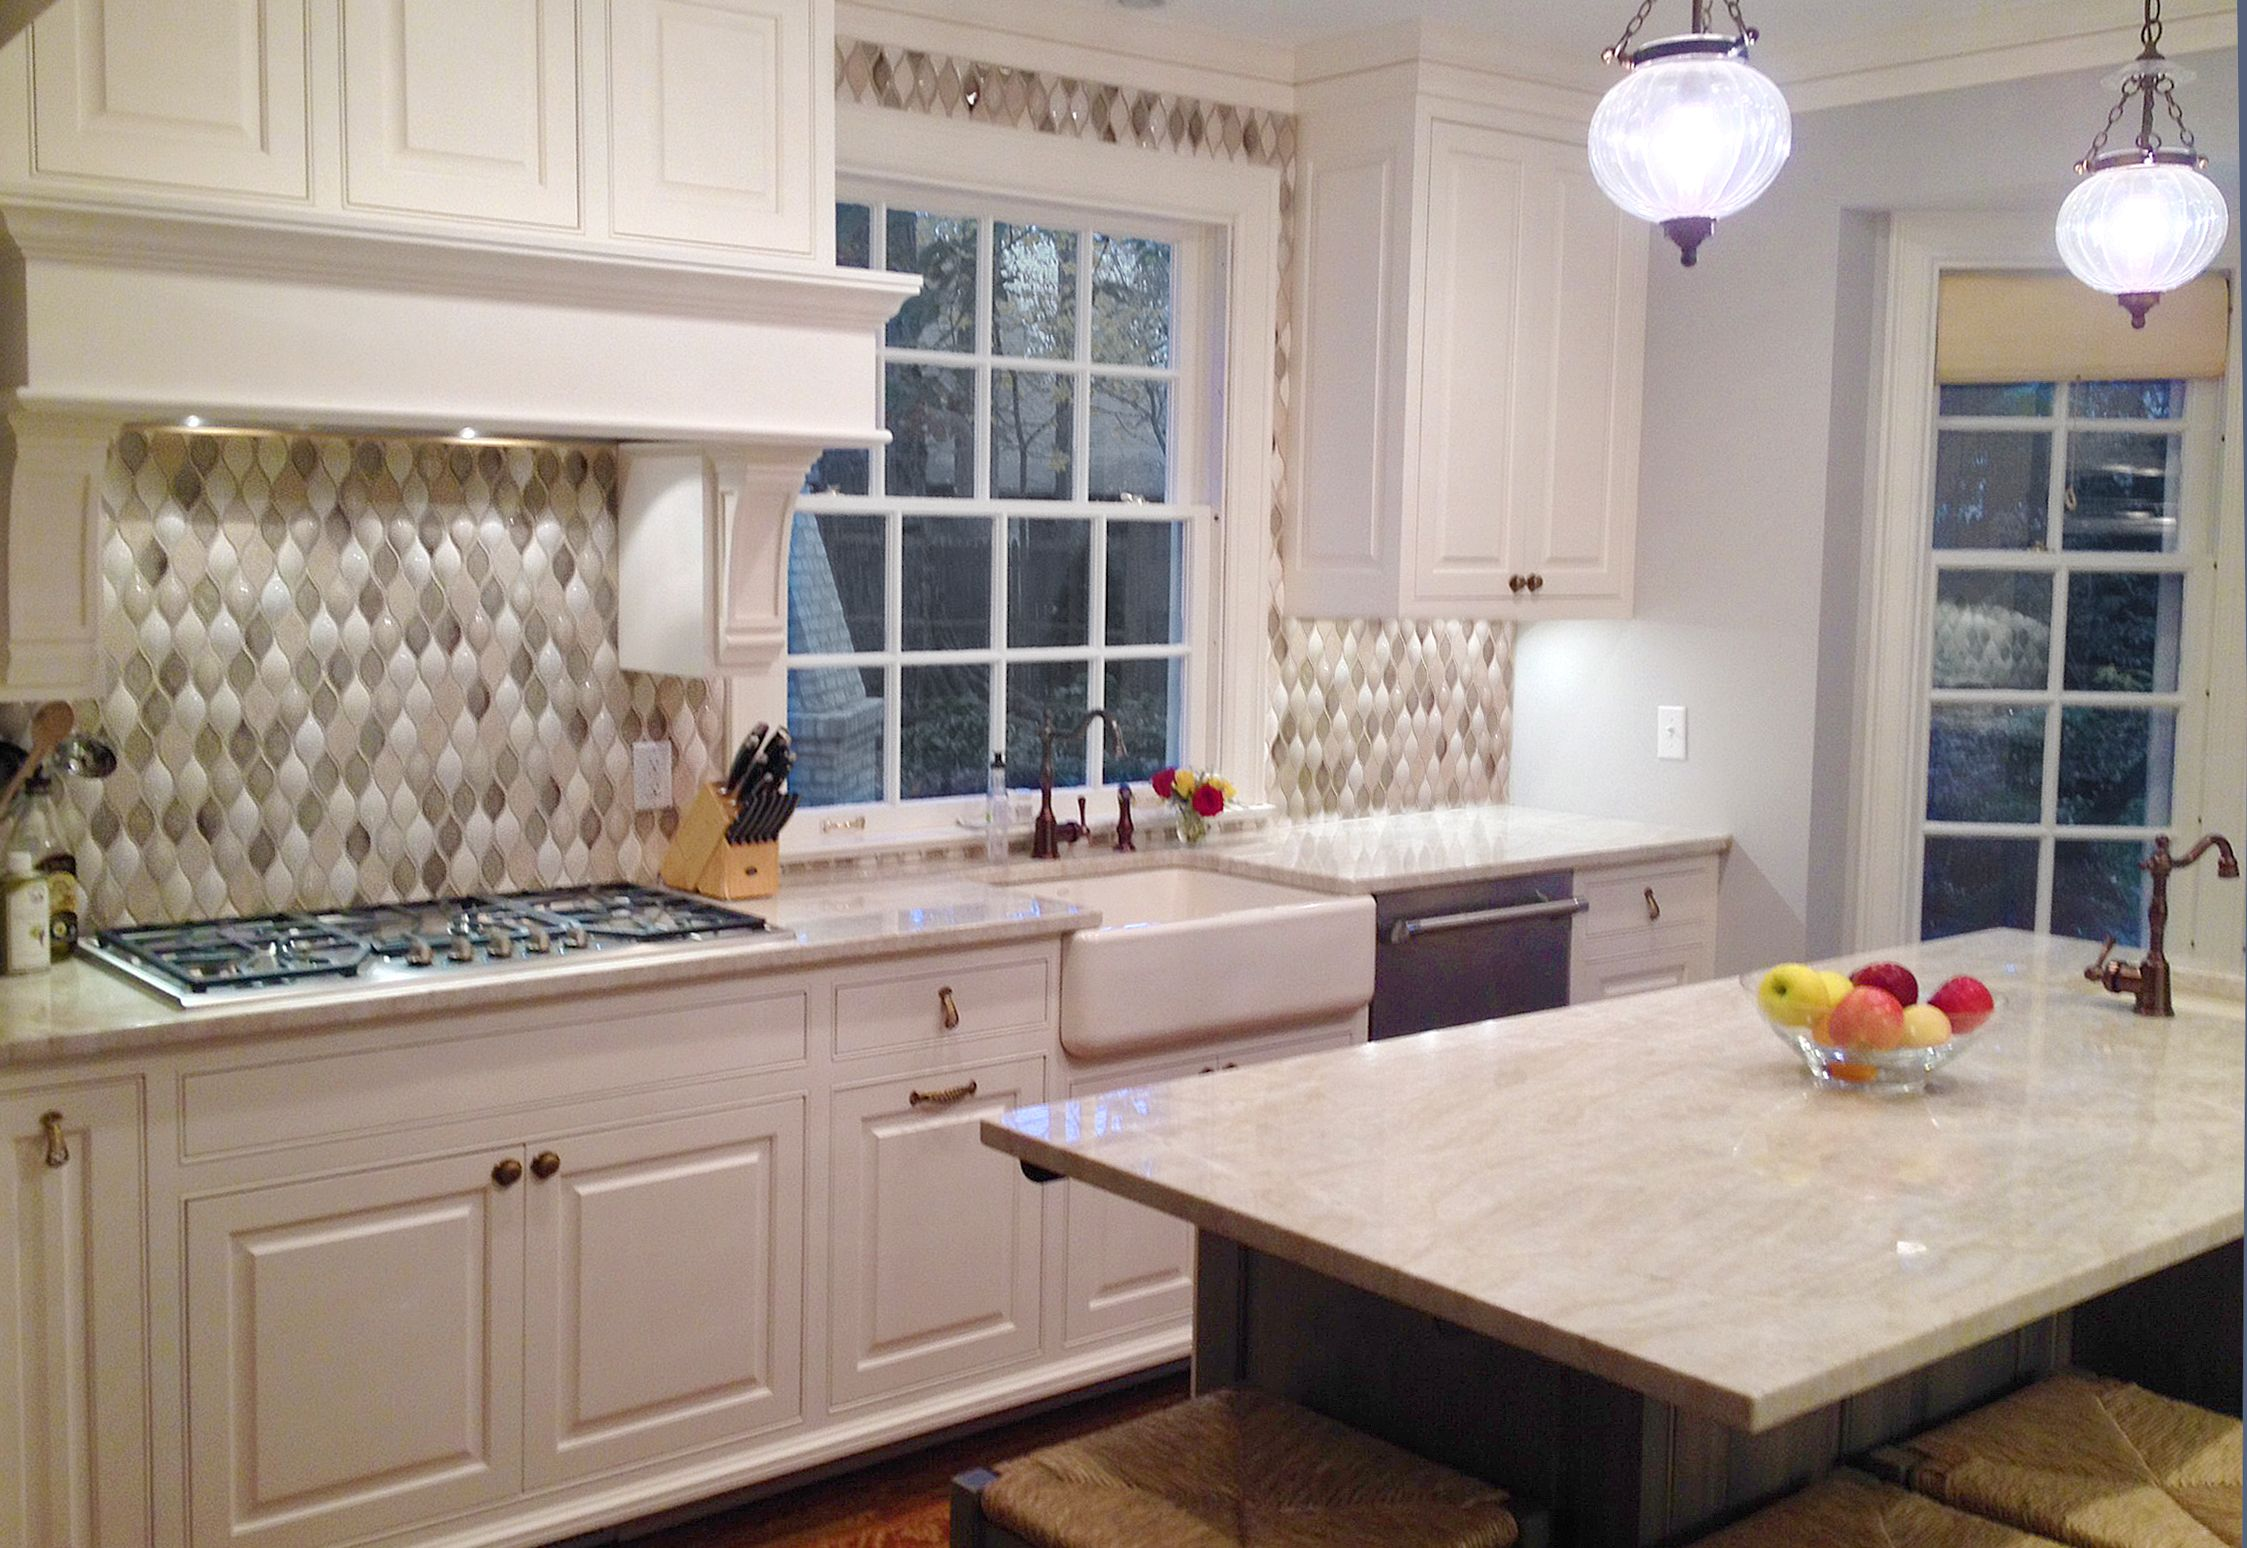 Traditional Kitchen Backsplash Encore Ceramics  Wave Mosaic With Added Dimensionals Makes The